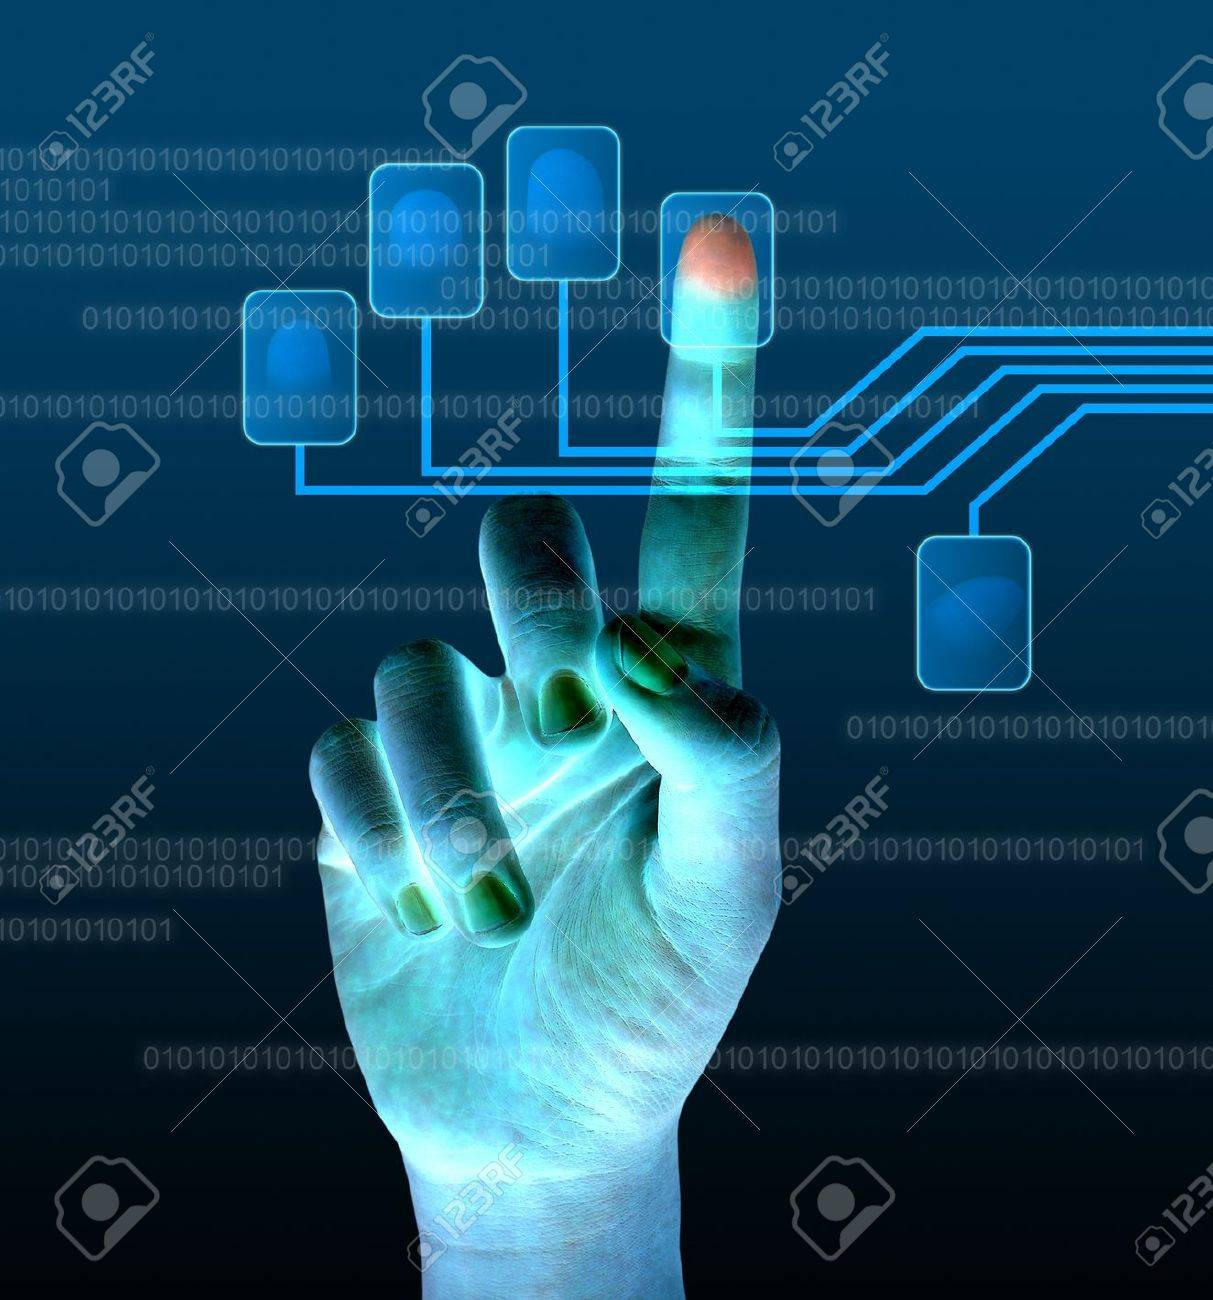 scanning of a finger on a touch screen interface Stock Photo - 12457717